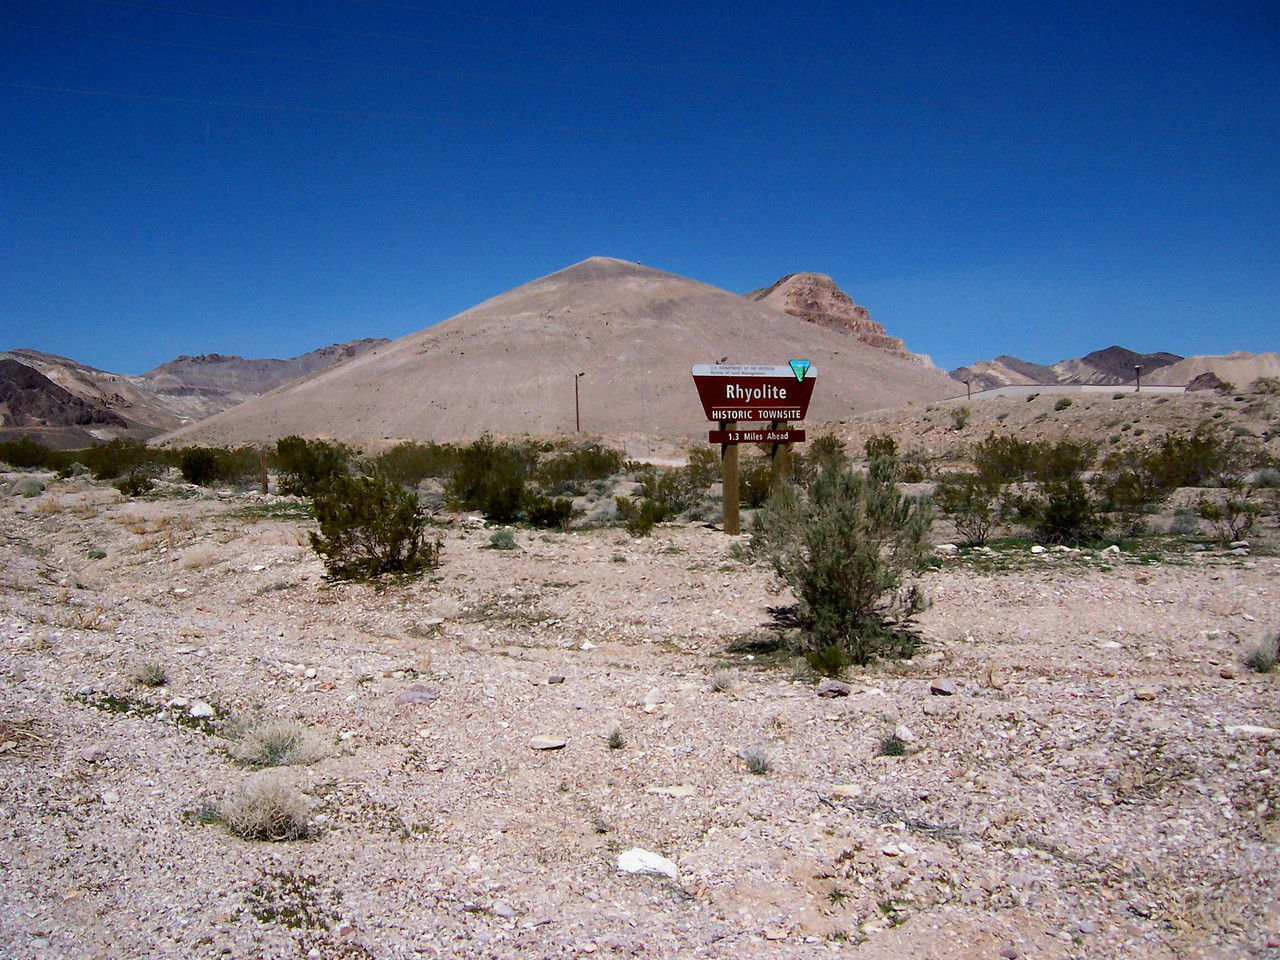 Day 7, Friday the 19th.. Woo hoo, the park opened the Titus Canyon Road.. So Paul, Sylvia and I head that way.. But first a stop at  the ghost town of Rhyolite, which is out that way..